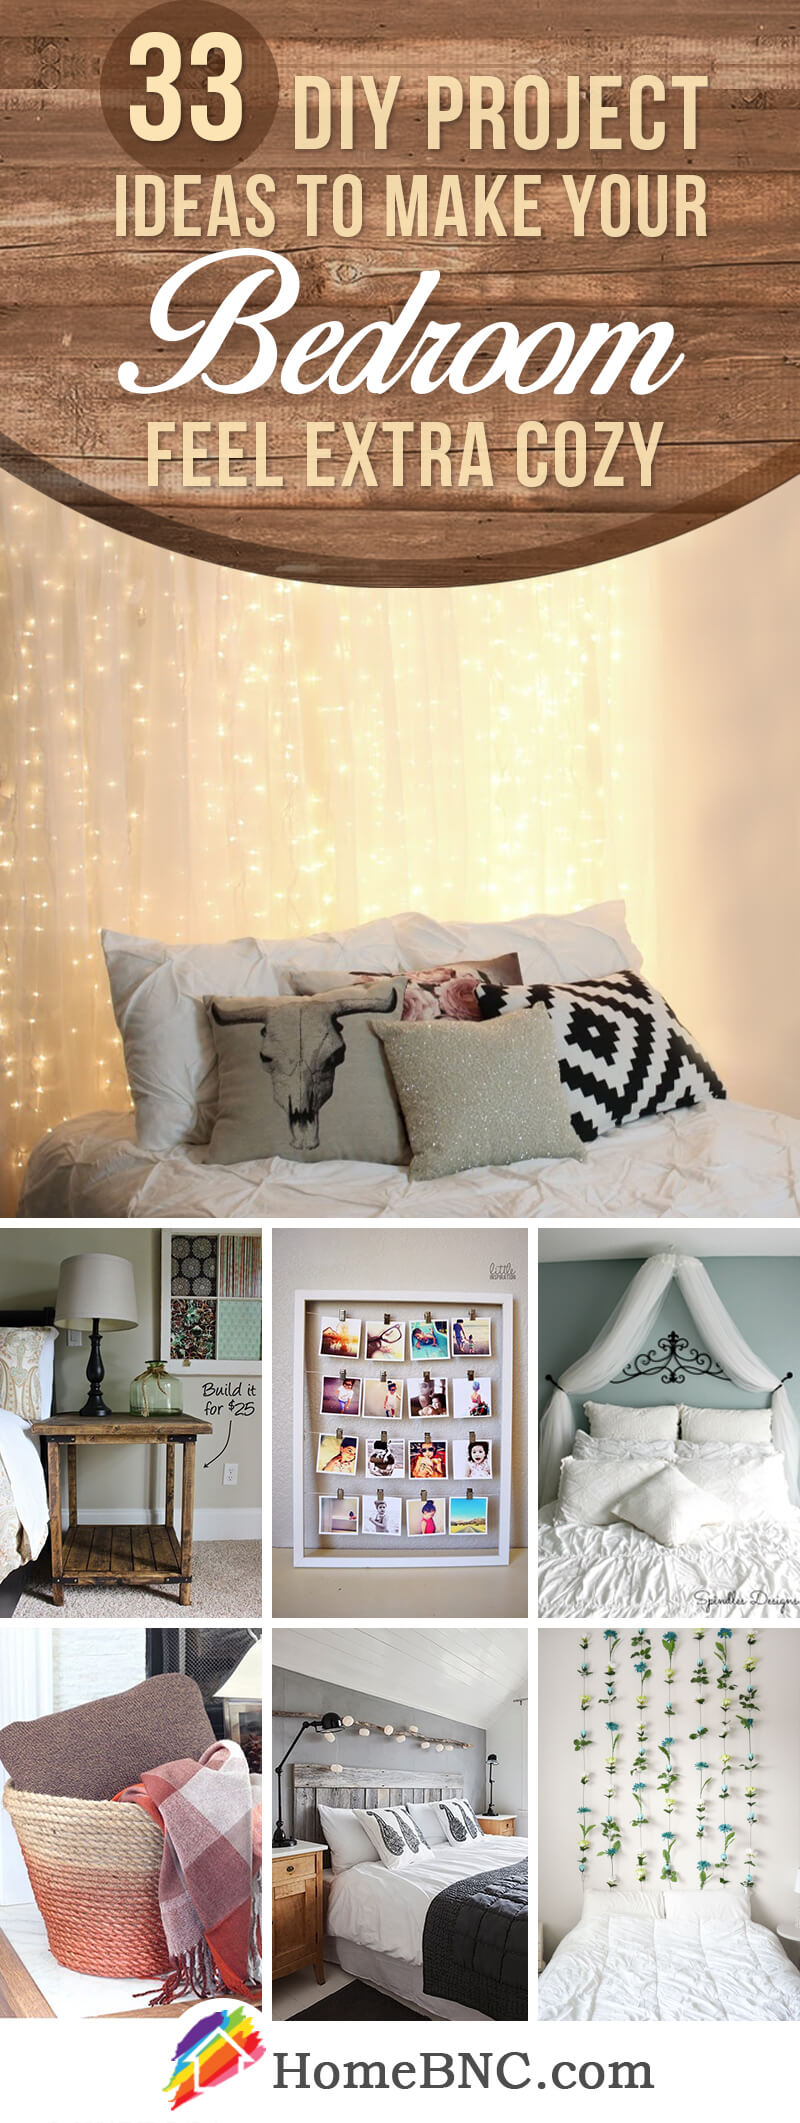 33 Best DIY Cozy Bedroom Project Ideas and Designs for 2018